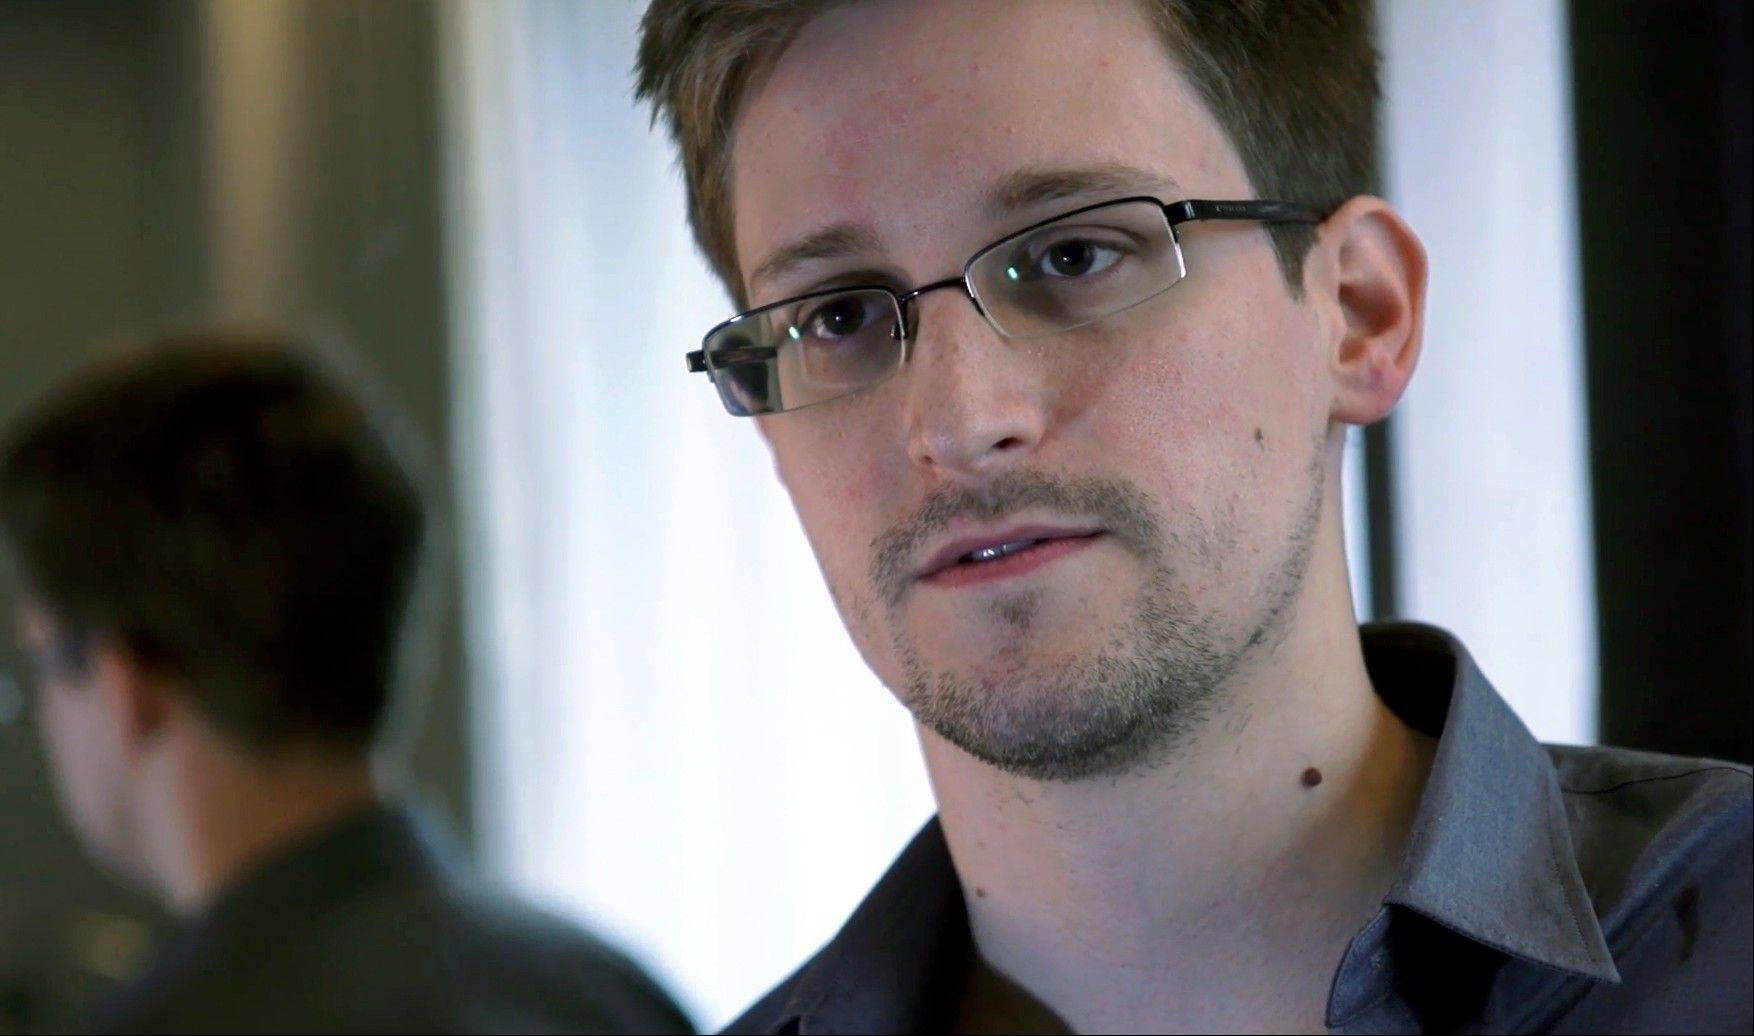 Associated Press/The Guardian Newspaper Edward Snowden, who worked as a contract employee at the National Security Agency, has given reports on intelligence programs to British media.